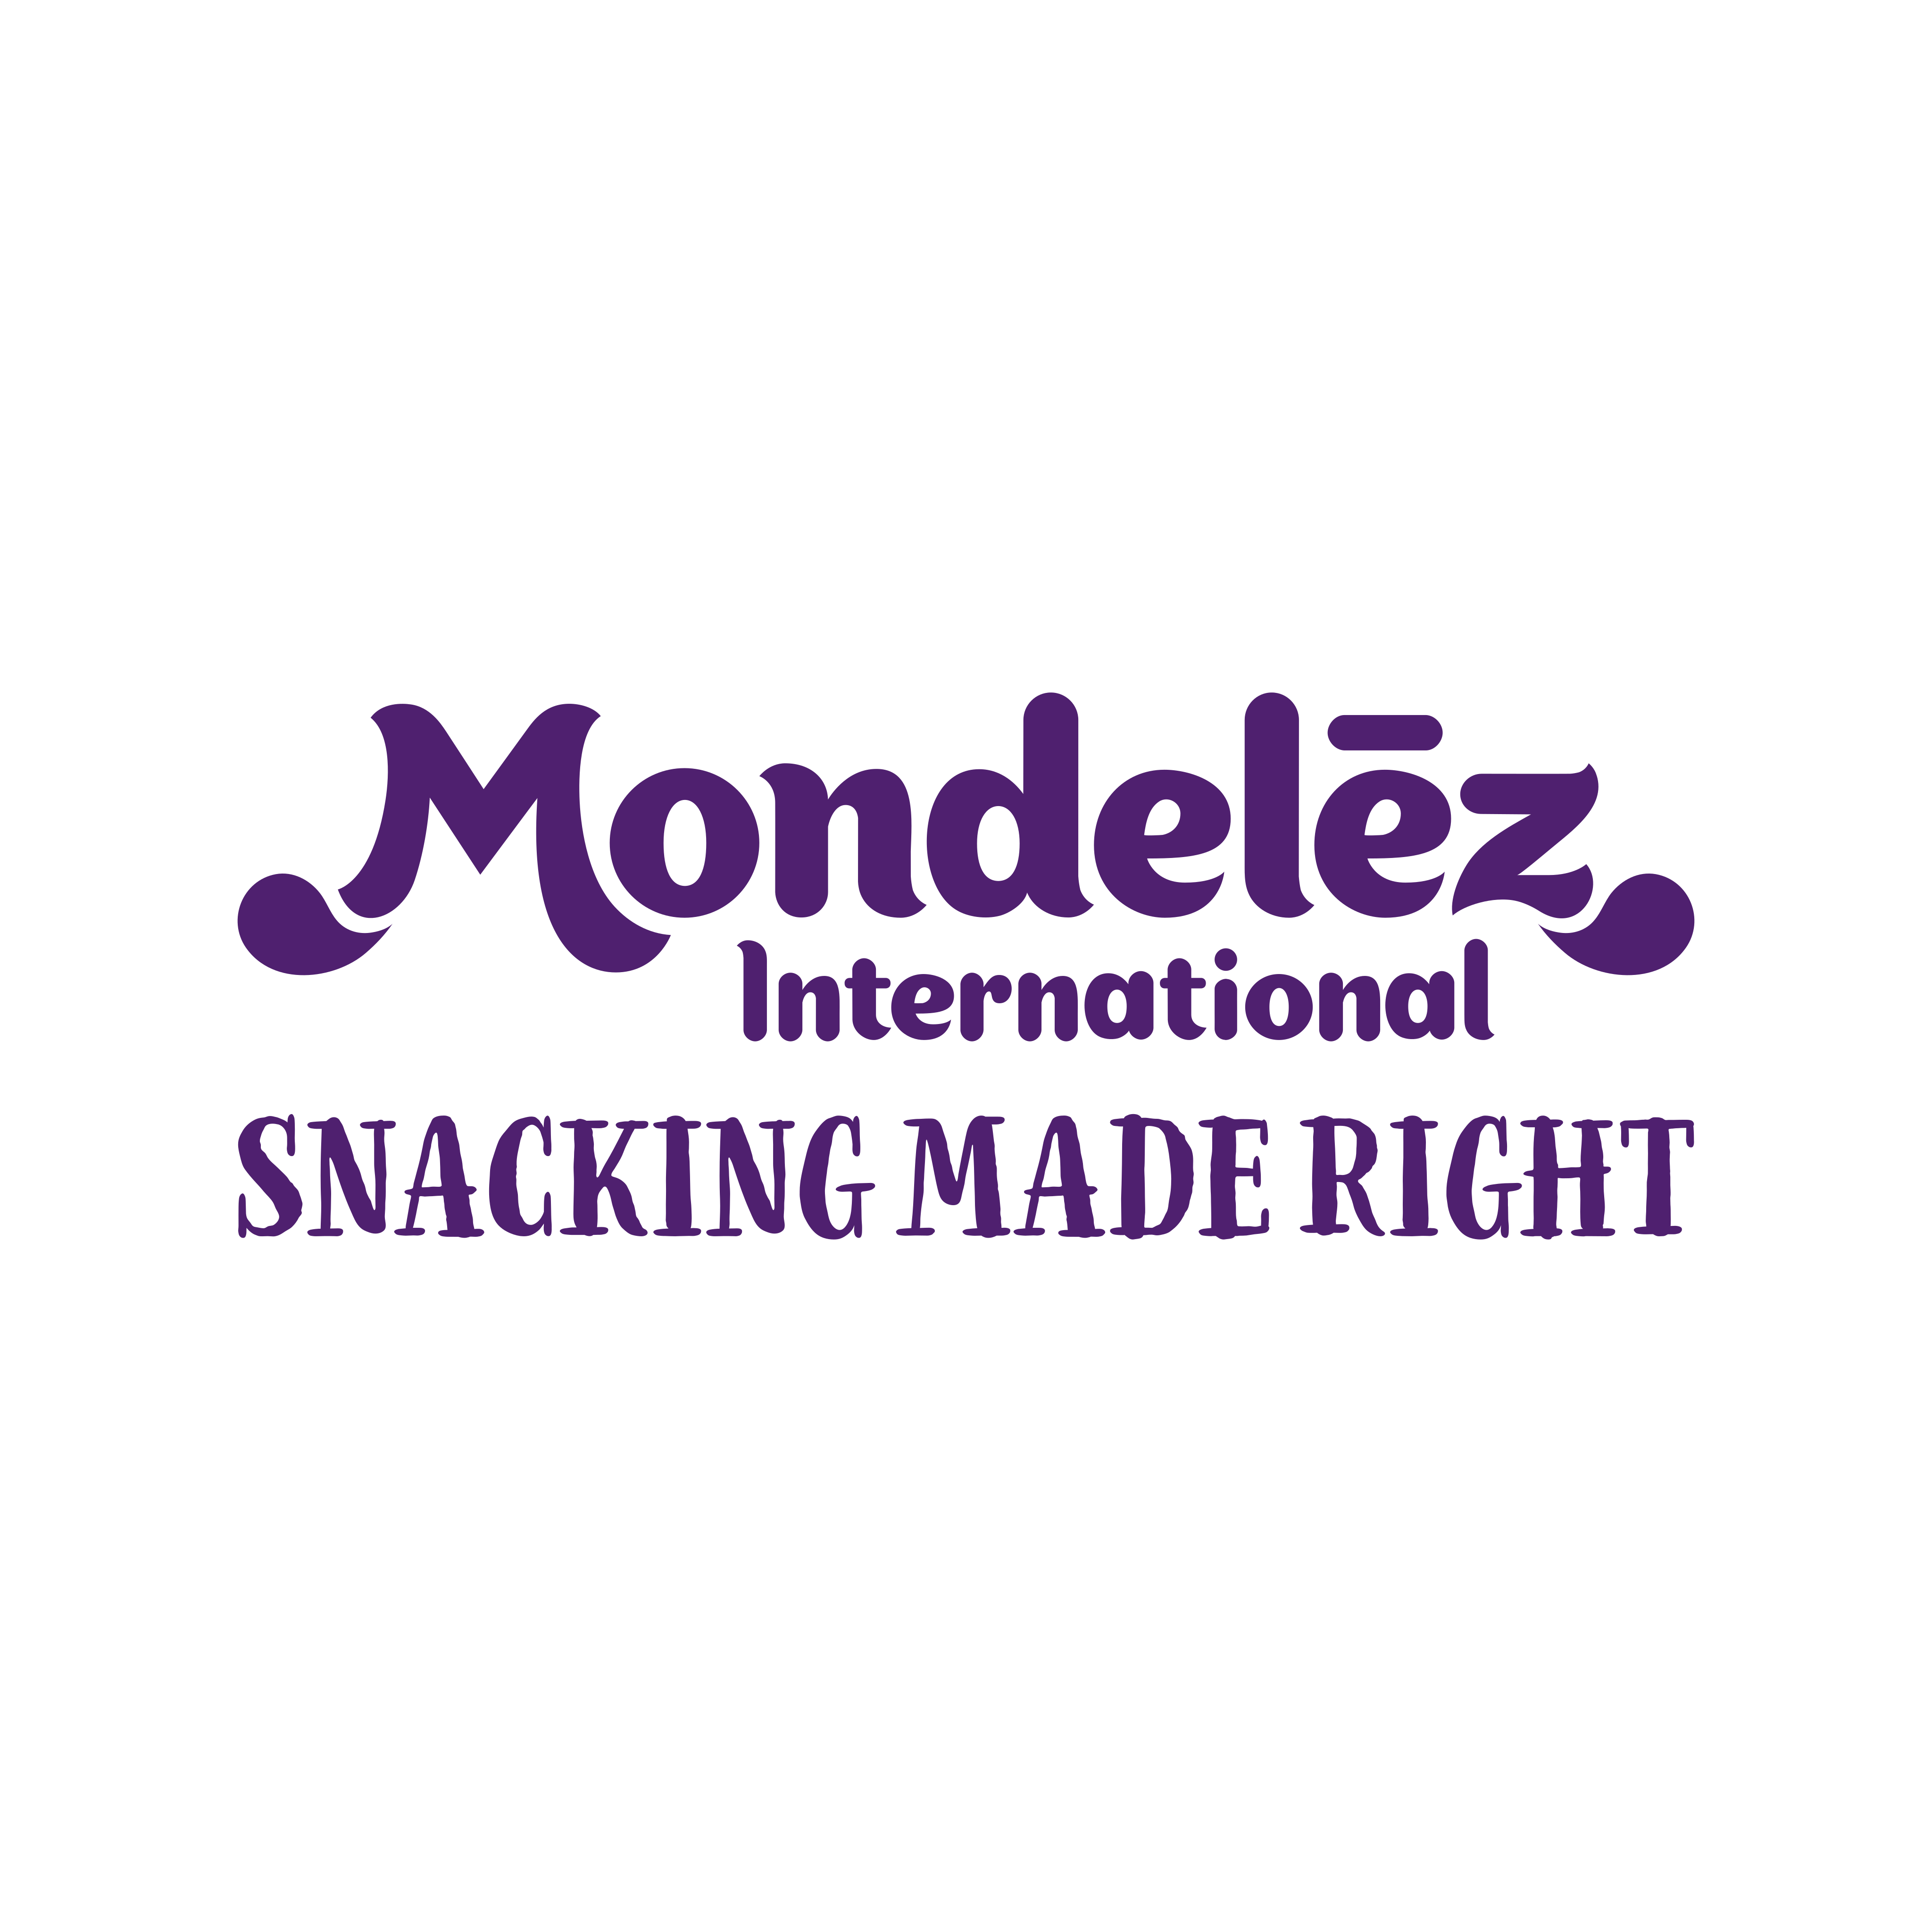 mondelez international logo 0 - Mondelēz International Logo